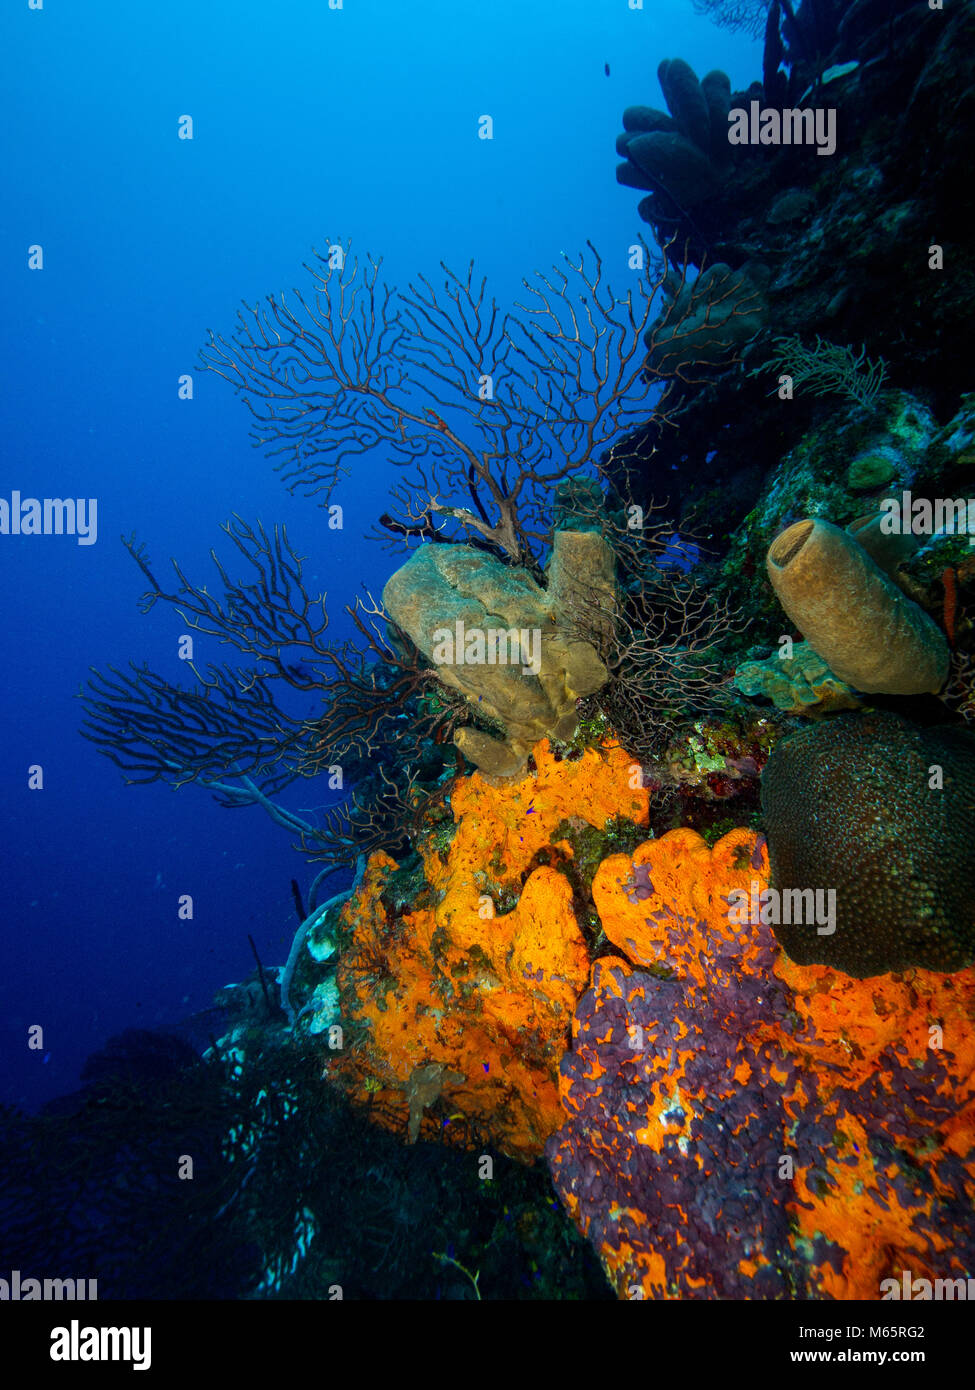 Coral wall with blue water background - Stock Image